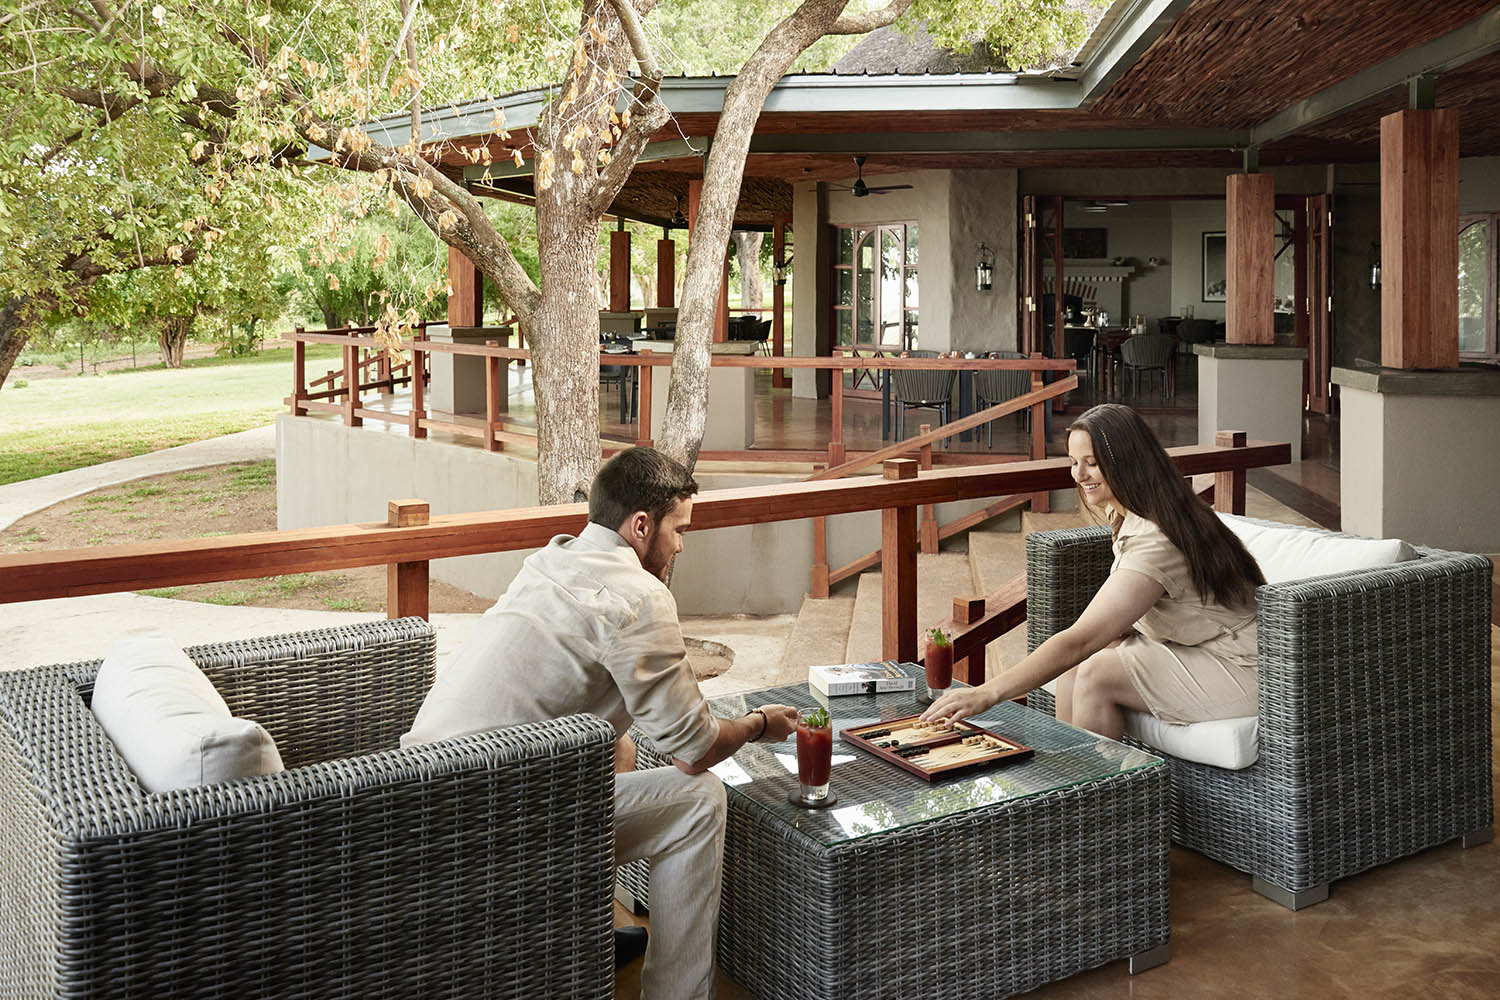 chobe chilwero botswana-lodges-zambia-in-style-chobe-national-park-lodge-relaxing